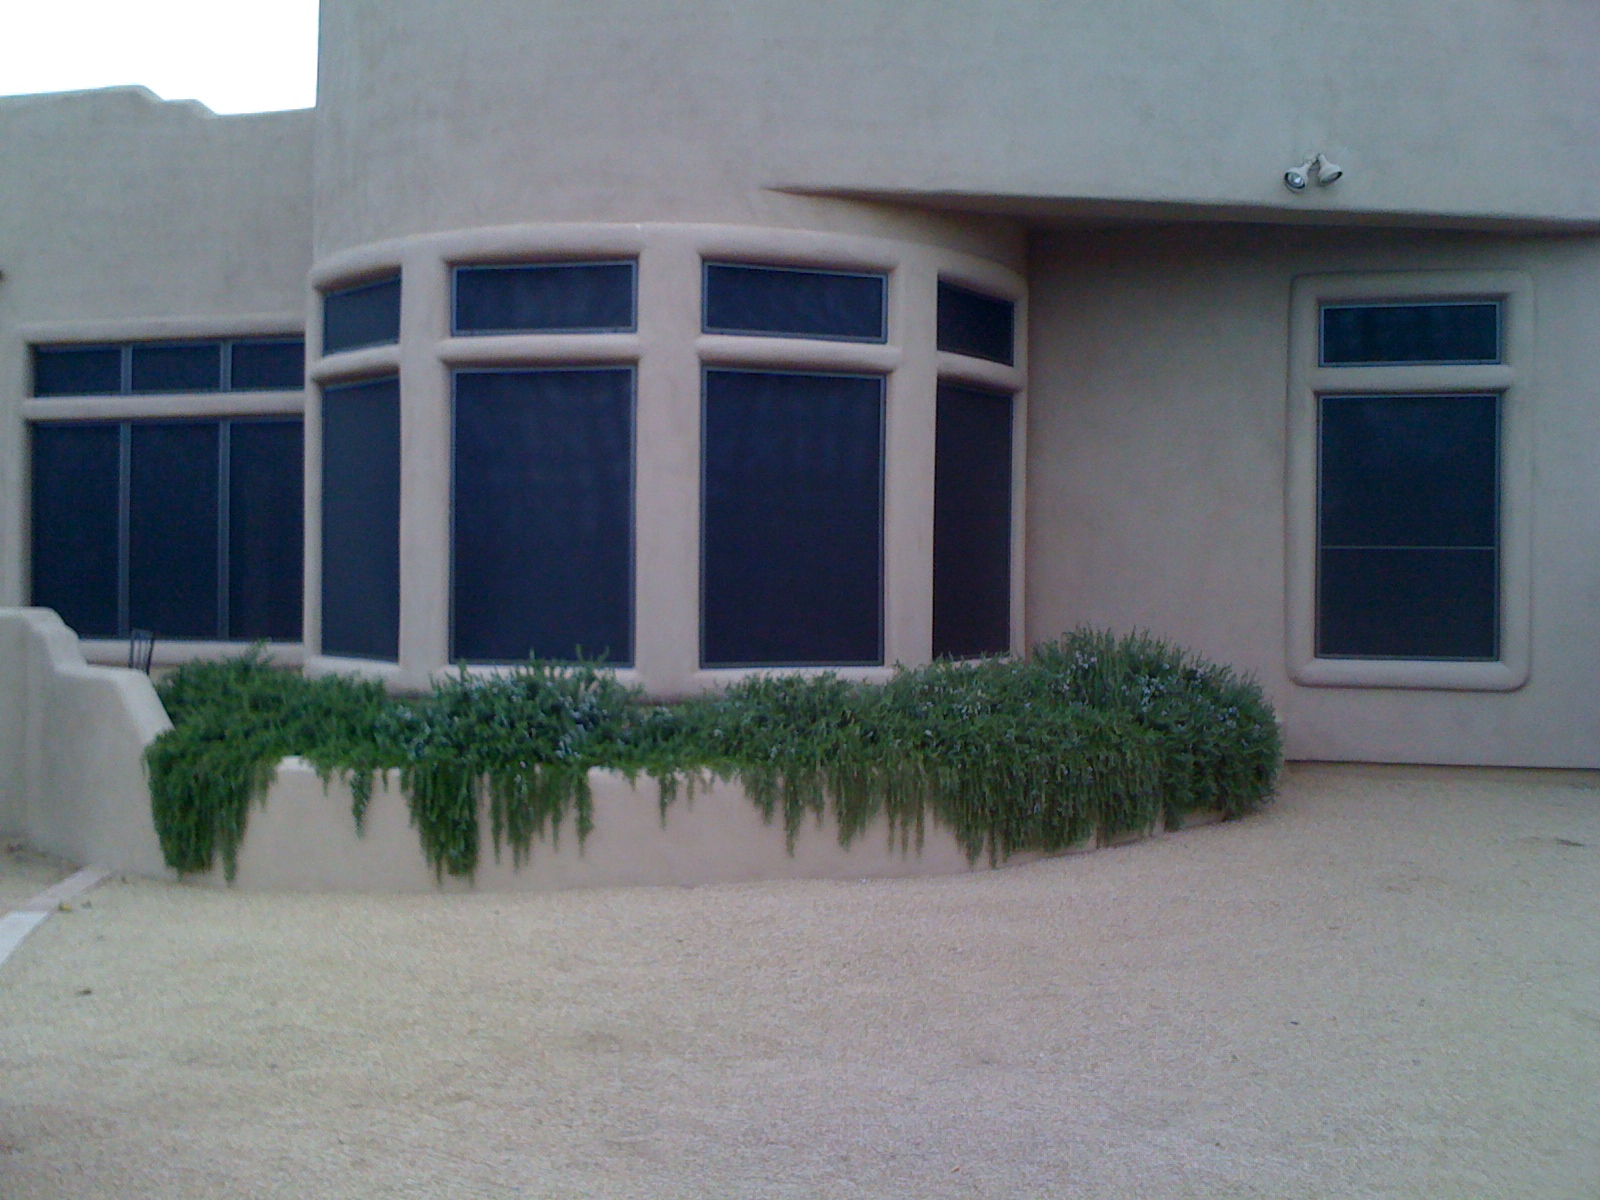 H-Town Window Coverings - Exterior Products